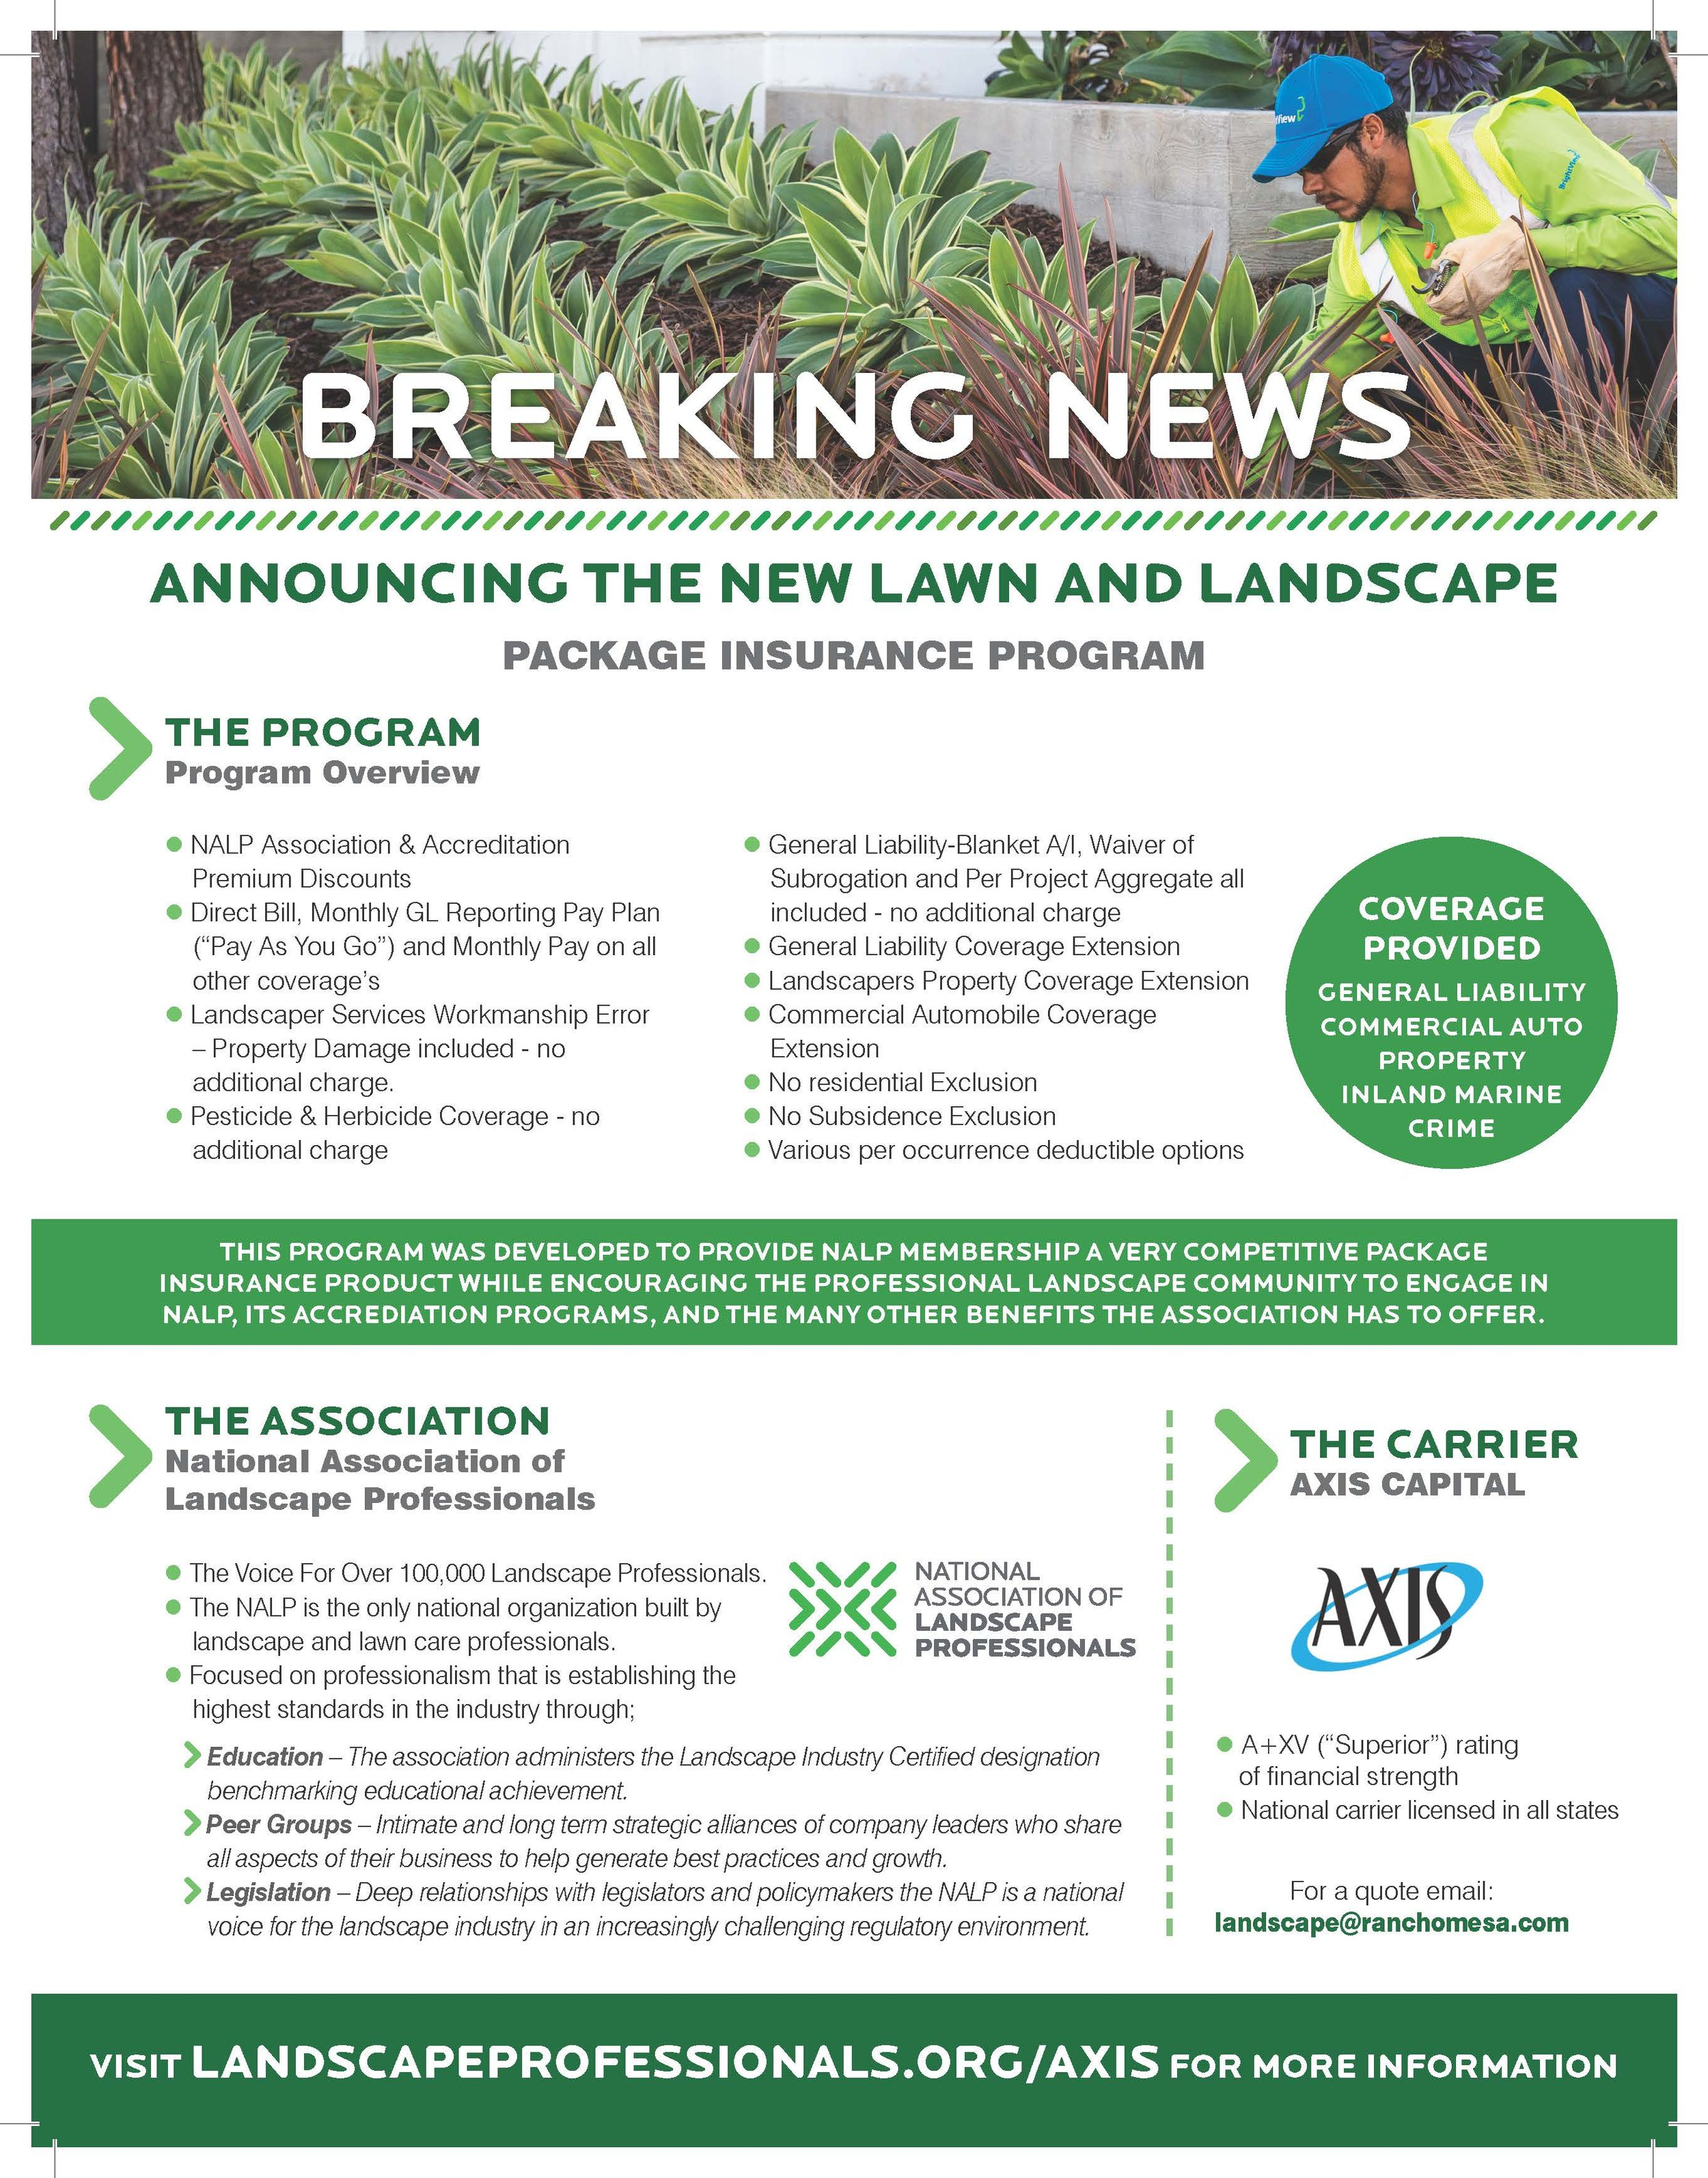 Announcing the New Lawn and Landscape Package Insurance Program